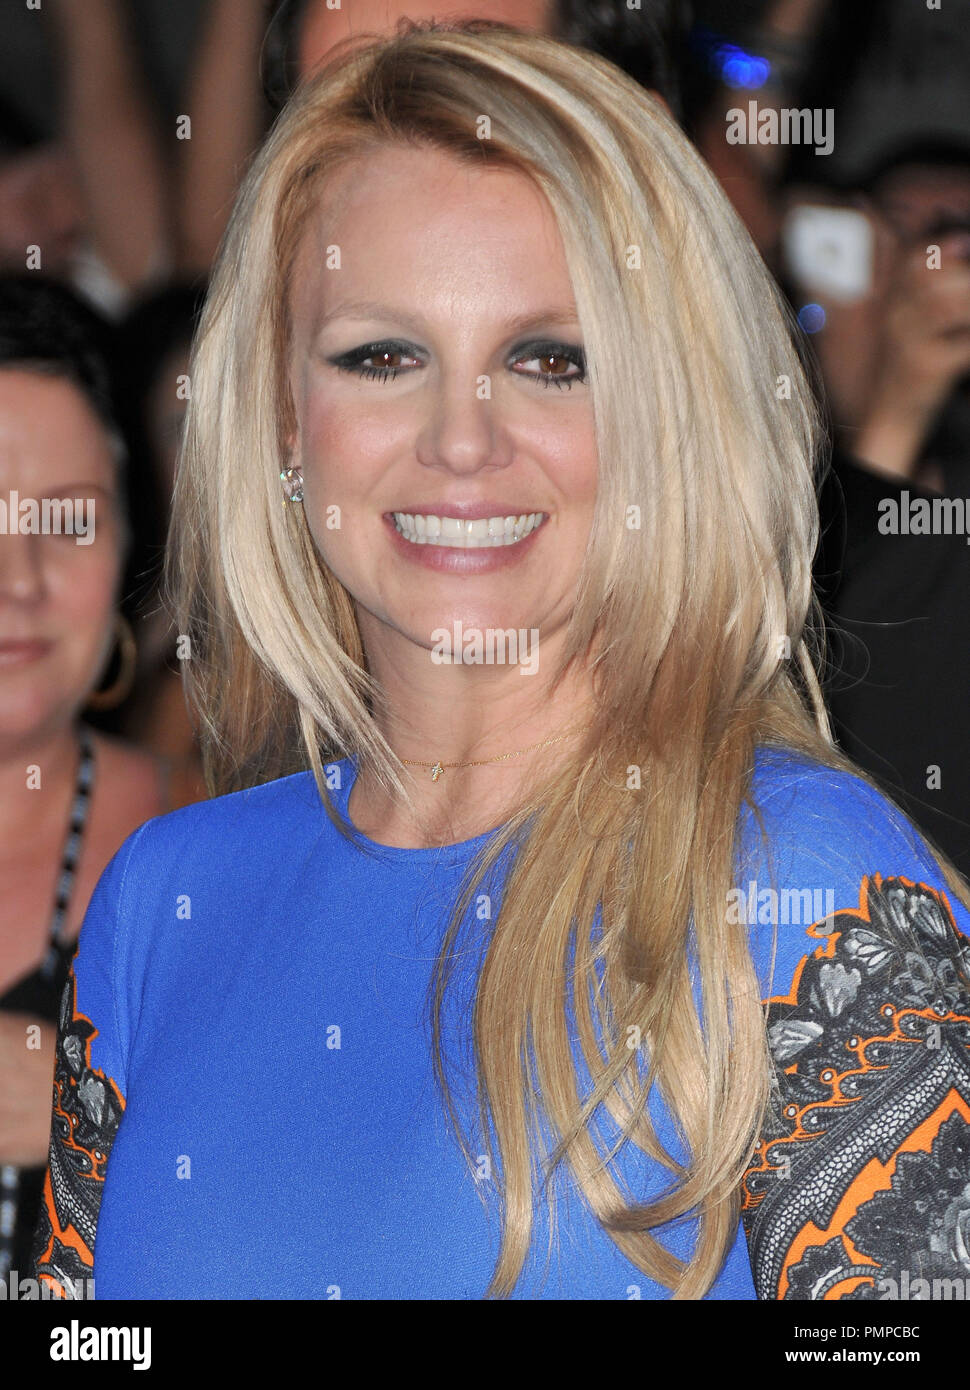 Britney Spears at 'The X Factor' Season 2 Premiere Party held at the Grauman's Chinese Theatre in Hollywood, CA. The event took place on Tuesday,  September 11, 2012. Photo by PRPP_PRPP  File Reference # 31644_006PRPP  For Editorial Use Only -  All Rights Reserved - Stock Image